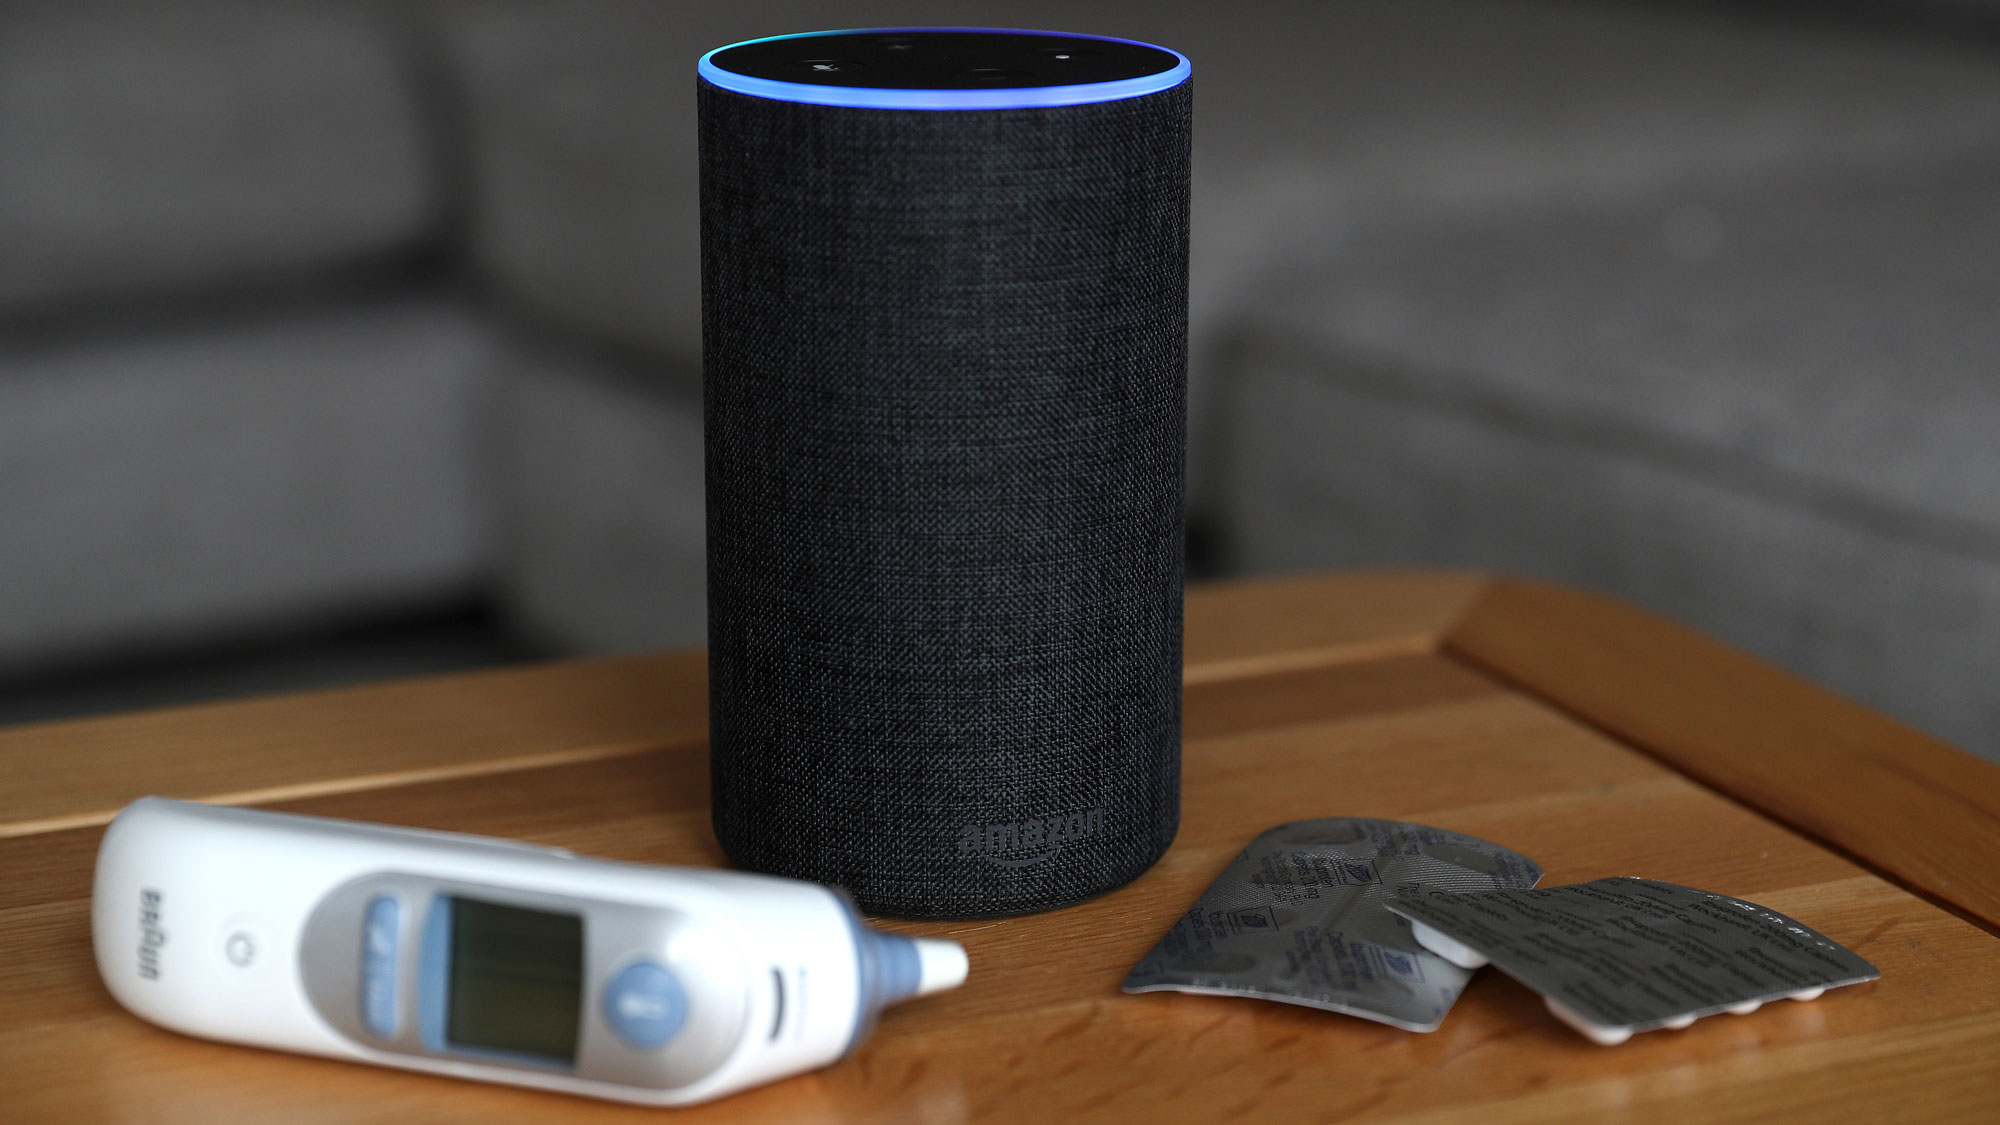 An Amazon Echo with tablets and a temperature probe beside it